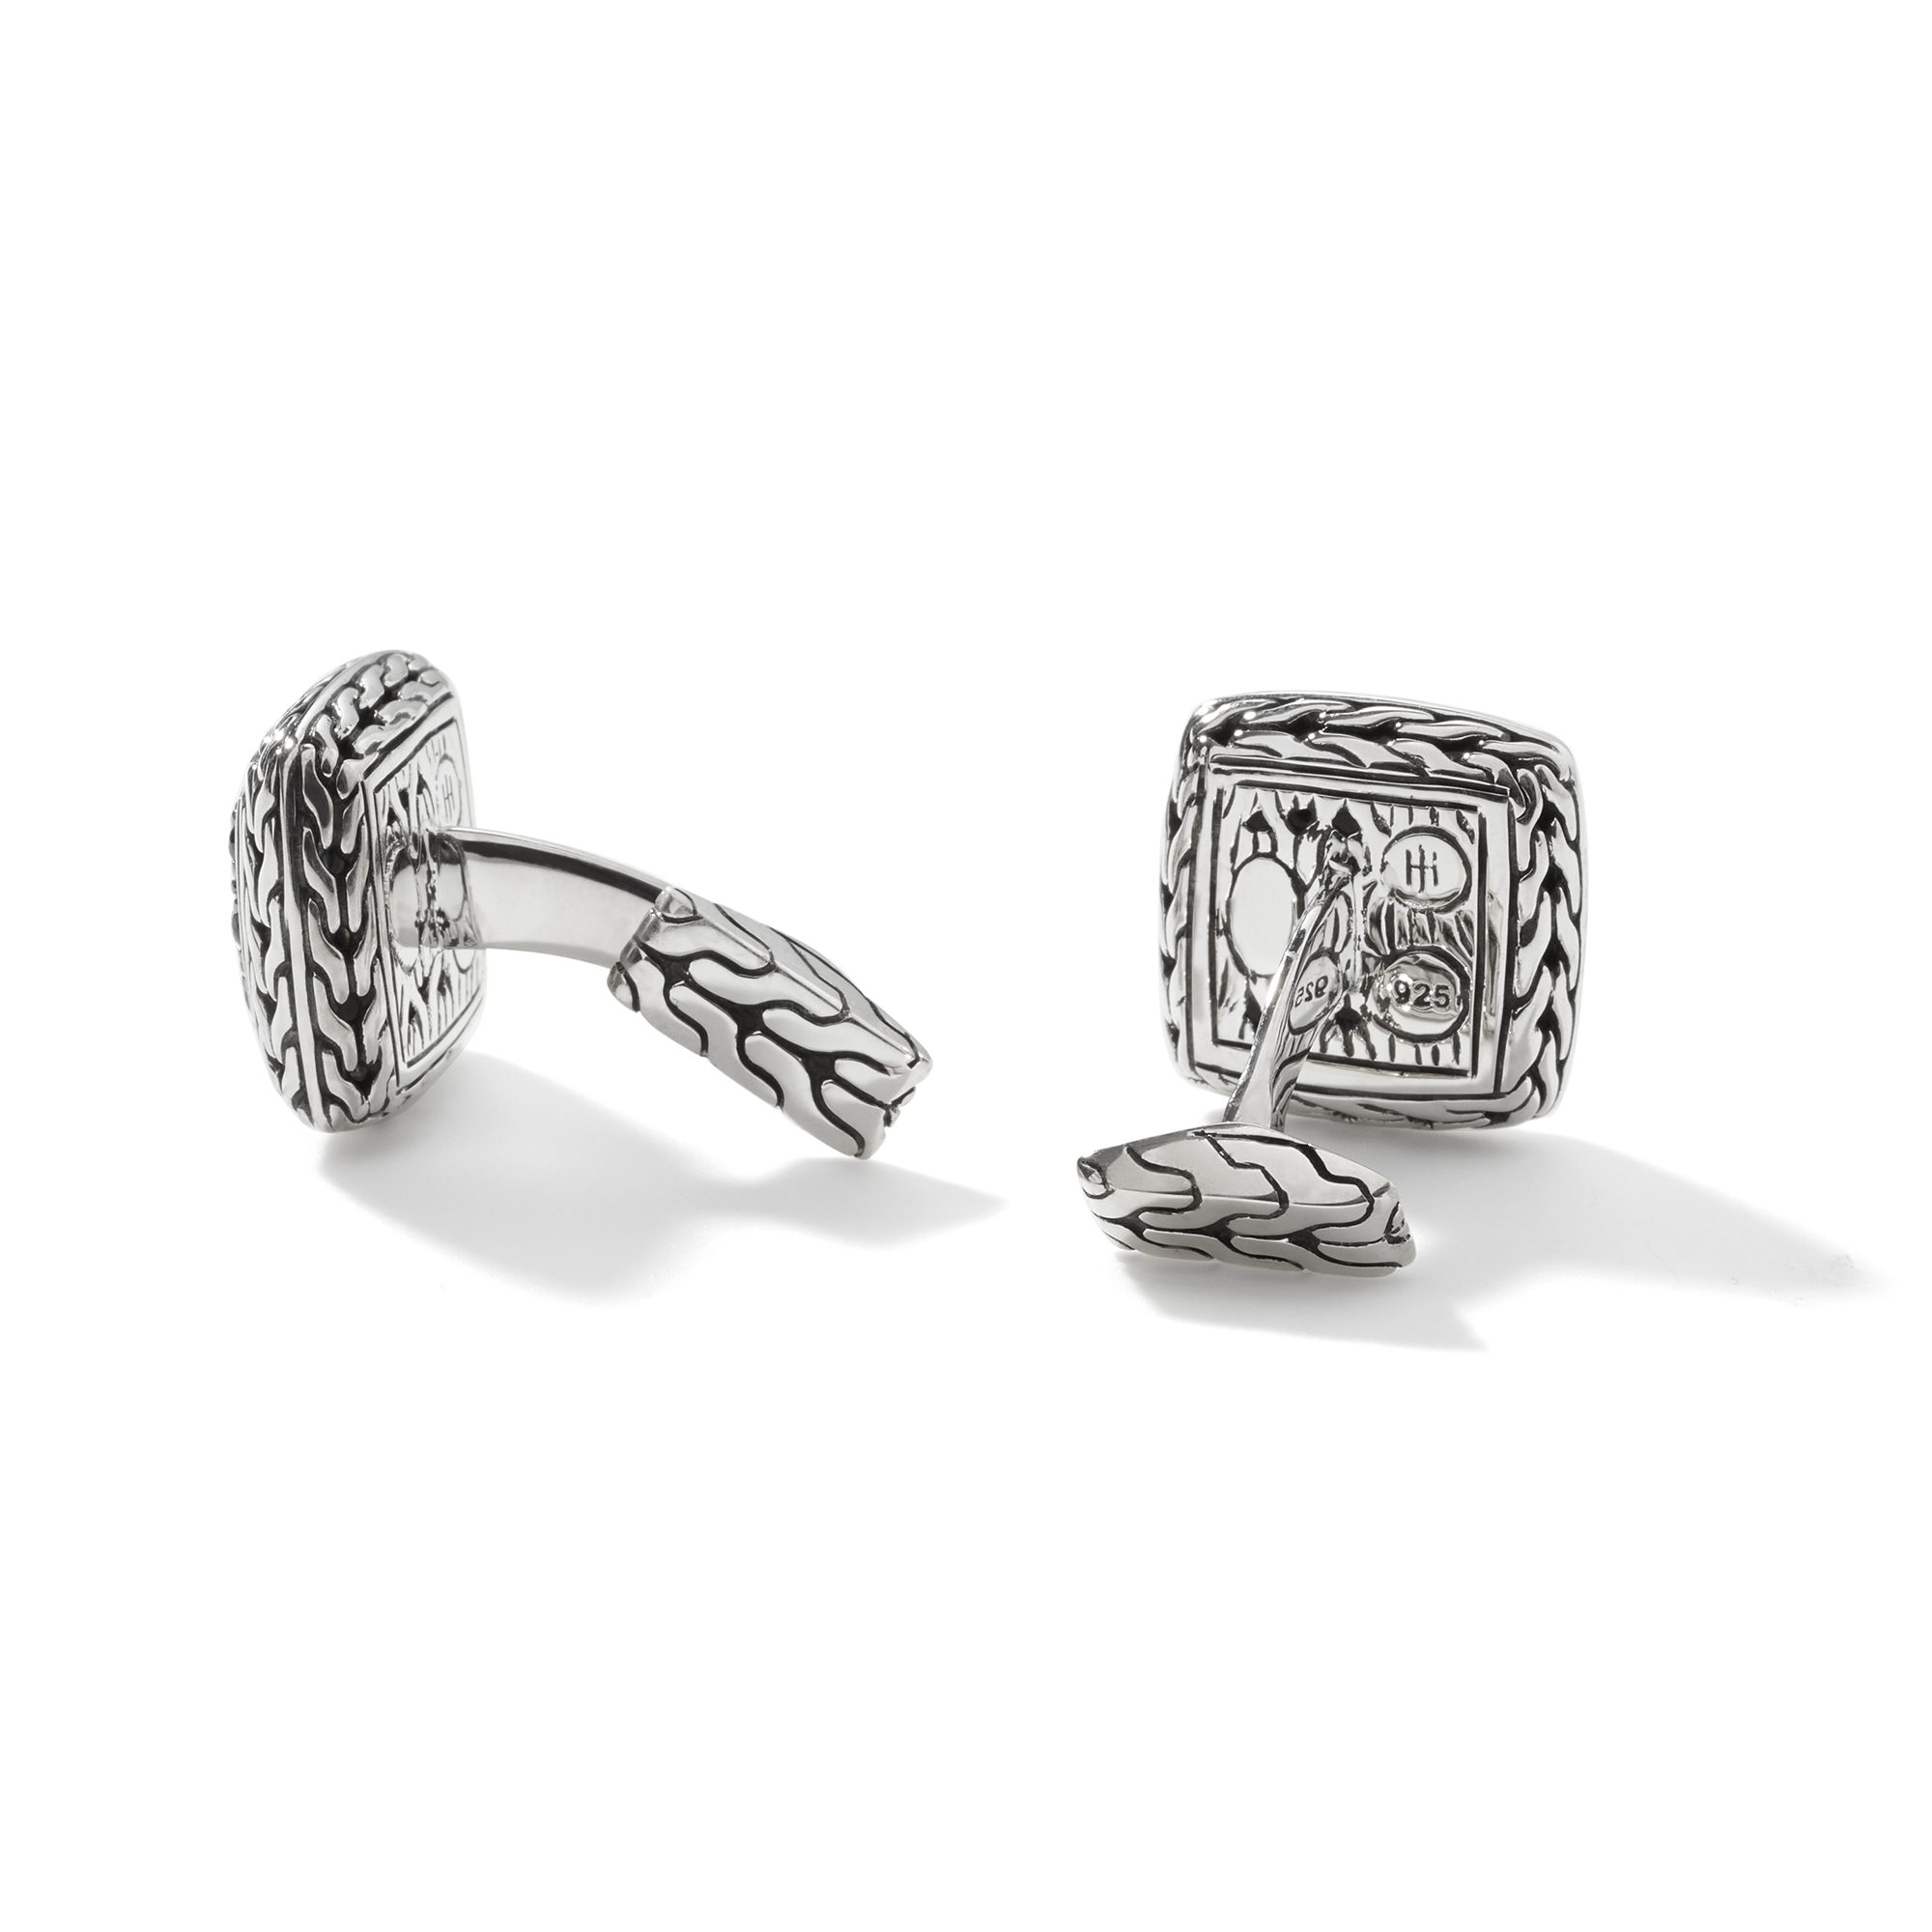 Classic Chain Cufflinks in Silver with Gemstone, Black Sapphire, large